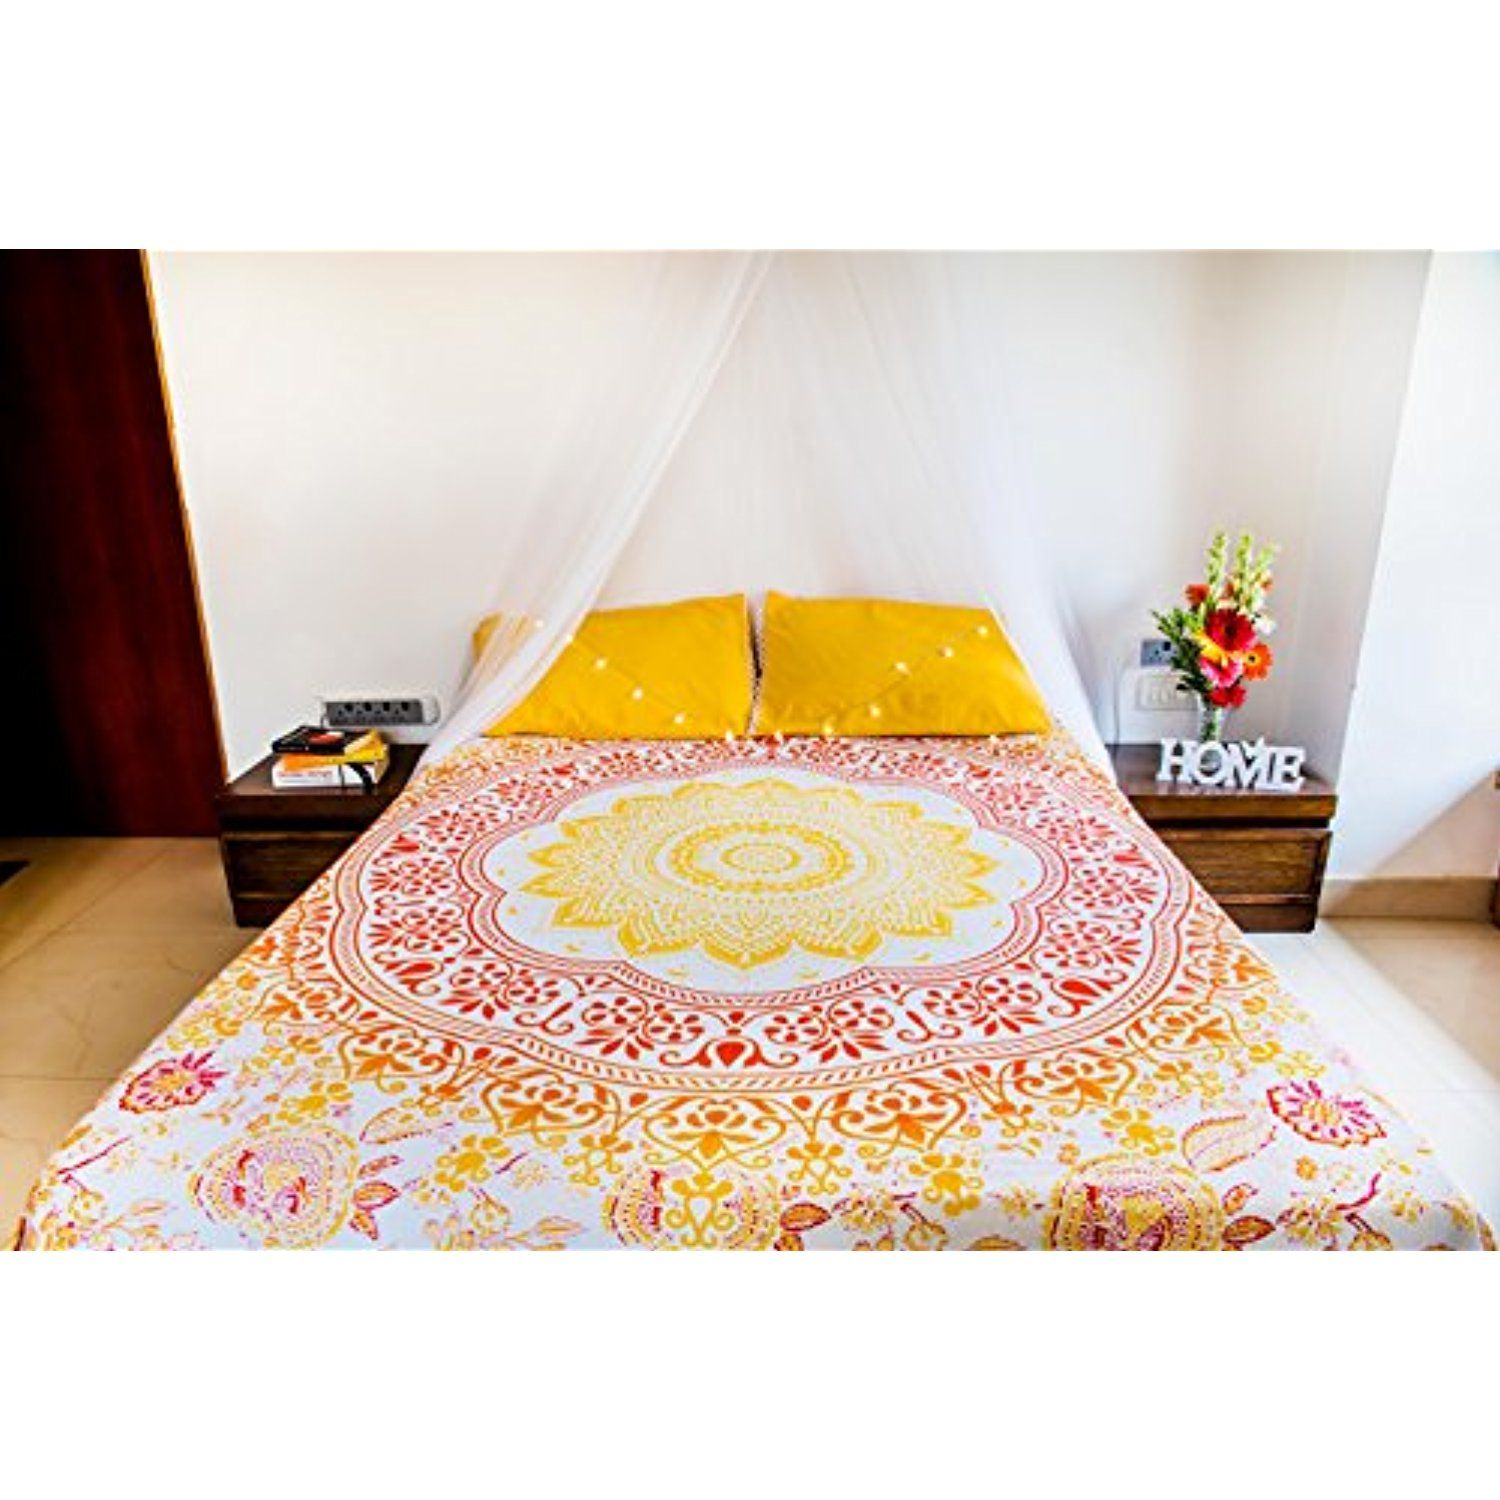 Indian Queen Size Bedding Bed Cover Hippie Bohemian Mandala Wall Hanging Throw